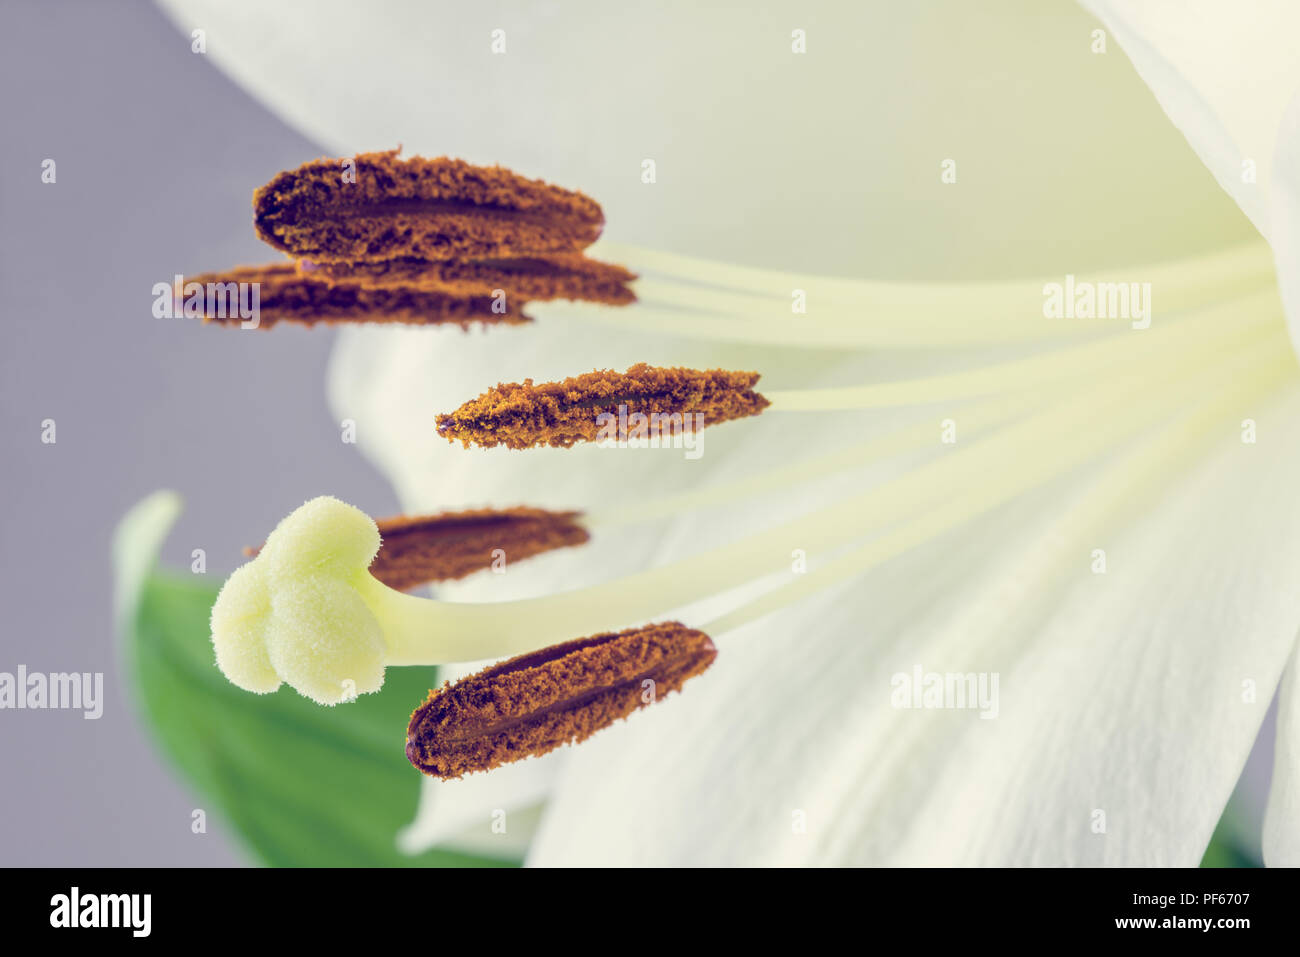 Macro closeup of the stamens and pistil of a fresh white tiger lily flower, retro effect faded look. - Stock Image